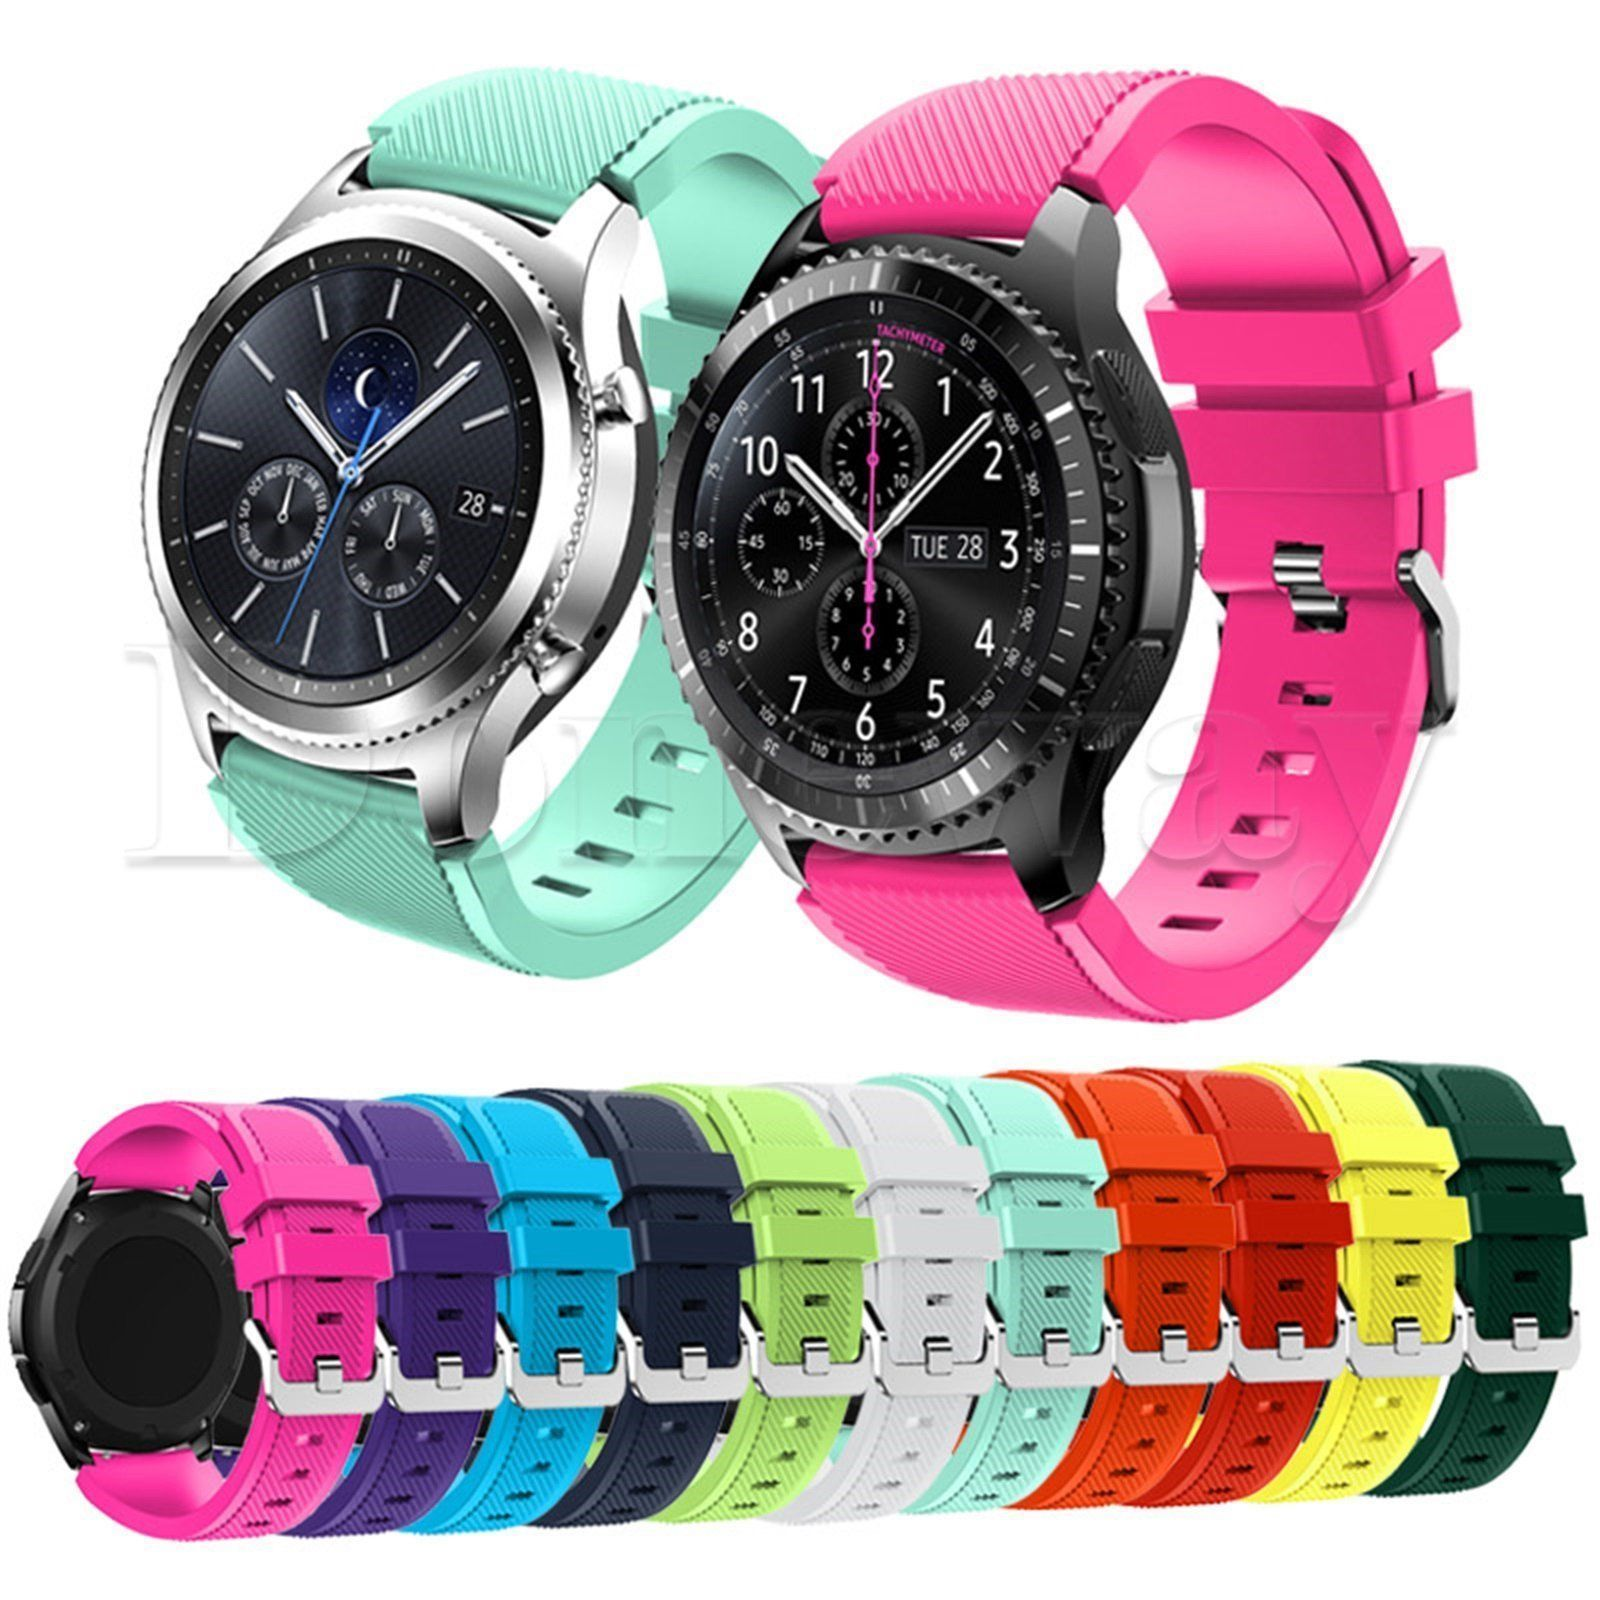 face smartwatches infinity watchfaces gear for your real watches heart samsung steel watch